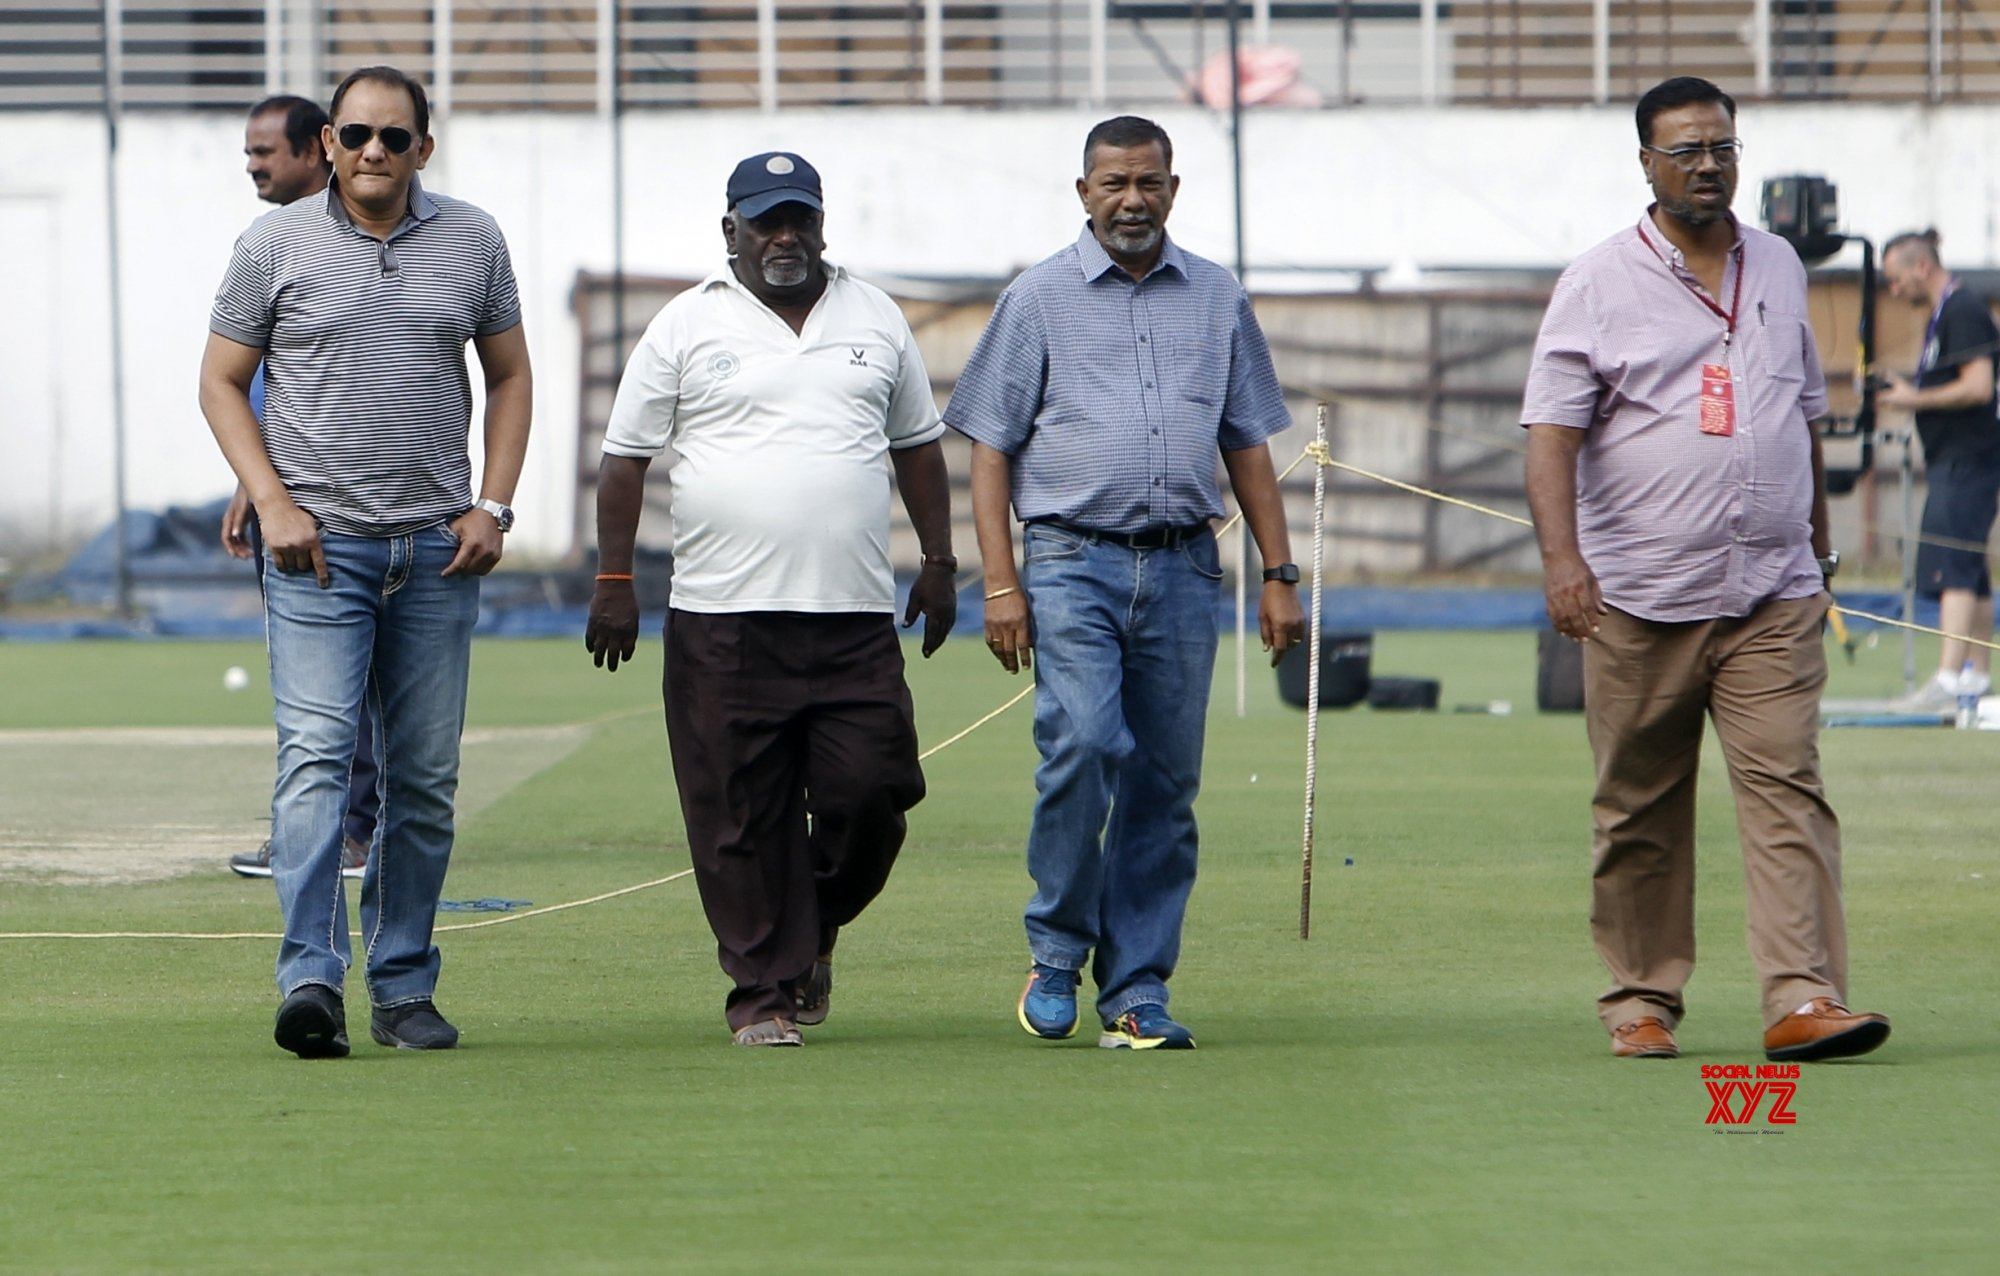 Hyderabad: India practice session (Batch - 3) #Gallery